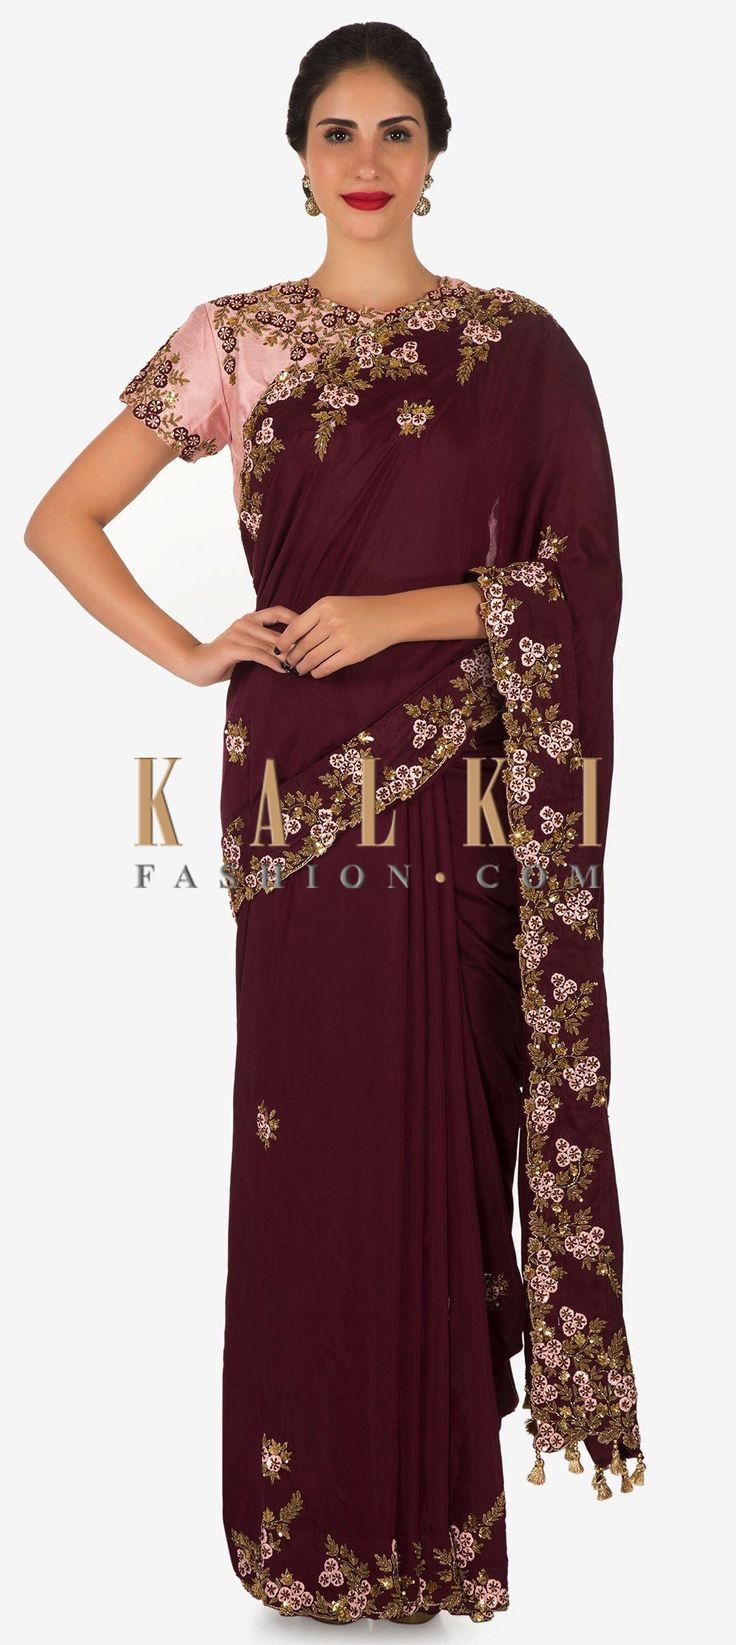 Buy Online from the link below. We ship worldwide (Free Shipping over US$100)  Click Anywhere to Tag Maroon saree with ready blouse in pink embroidered with resham and sequin work only on Kalki Maroon saree is featured in cotton silk fabric. The saree is beautifully decorated with resham and zardosi embroidered borders with scattered sequins. The saree pallav has attached tassels at the hem. Matched with a ready stitched blouse in pink.